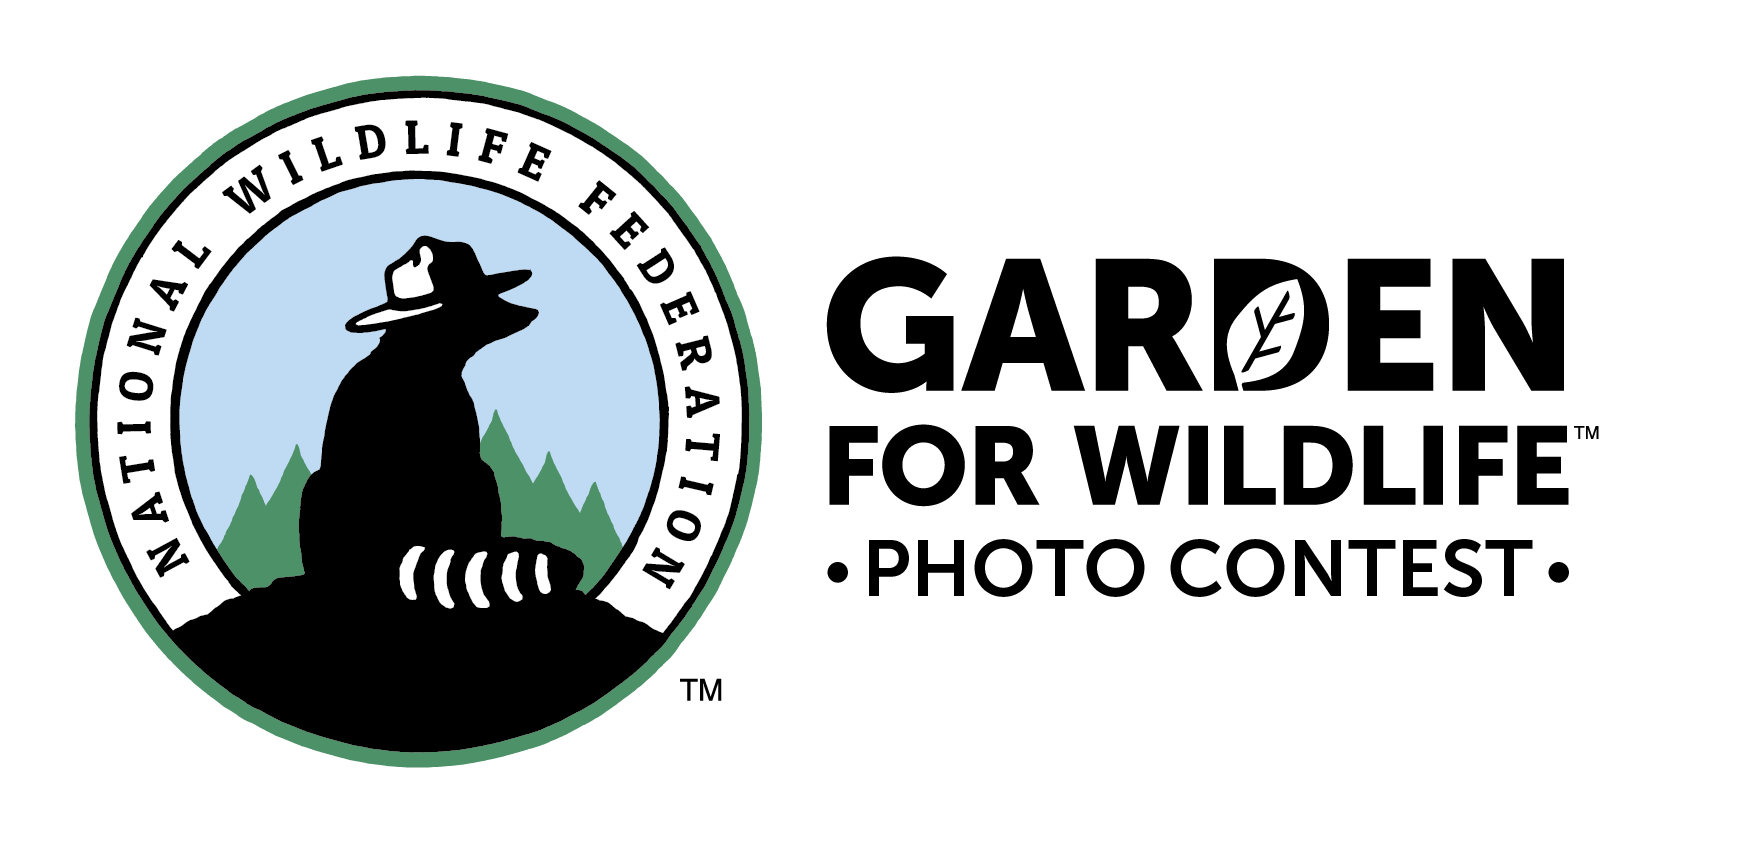 National Wildlife Federation's Garden for Wildlife Photo Contest